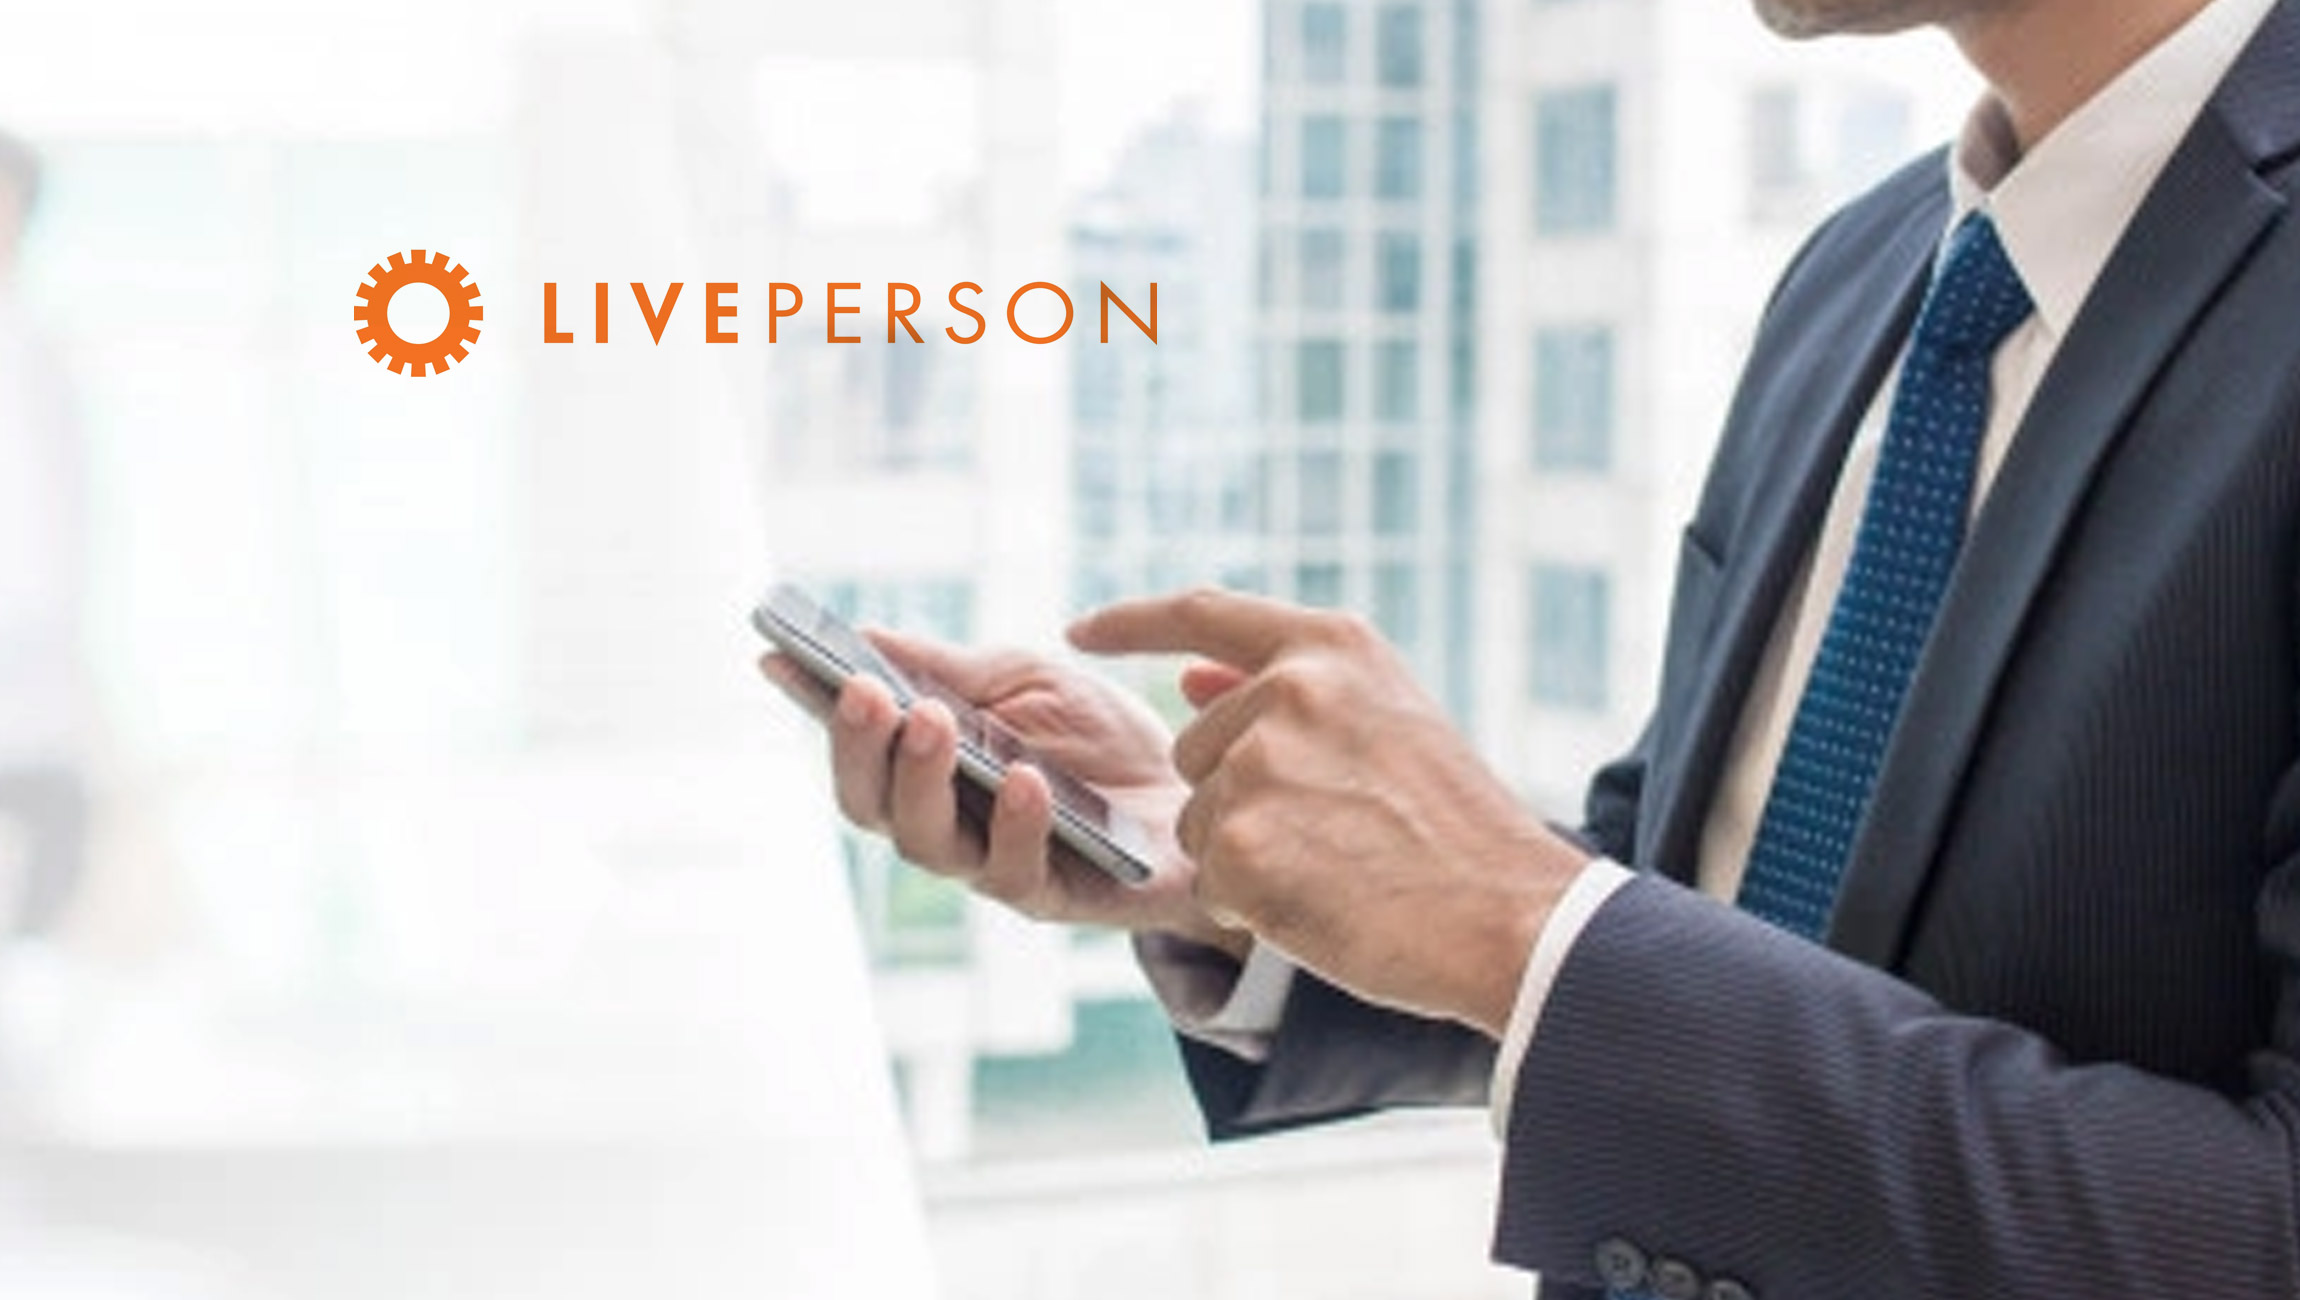 LivePerson and Adobe Transform Digital Experiences With Conversational AI and Personalization